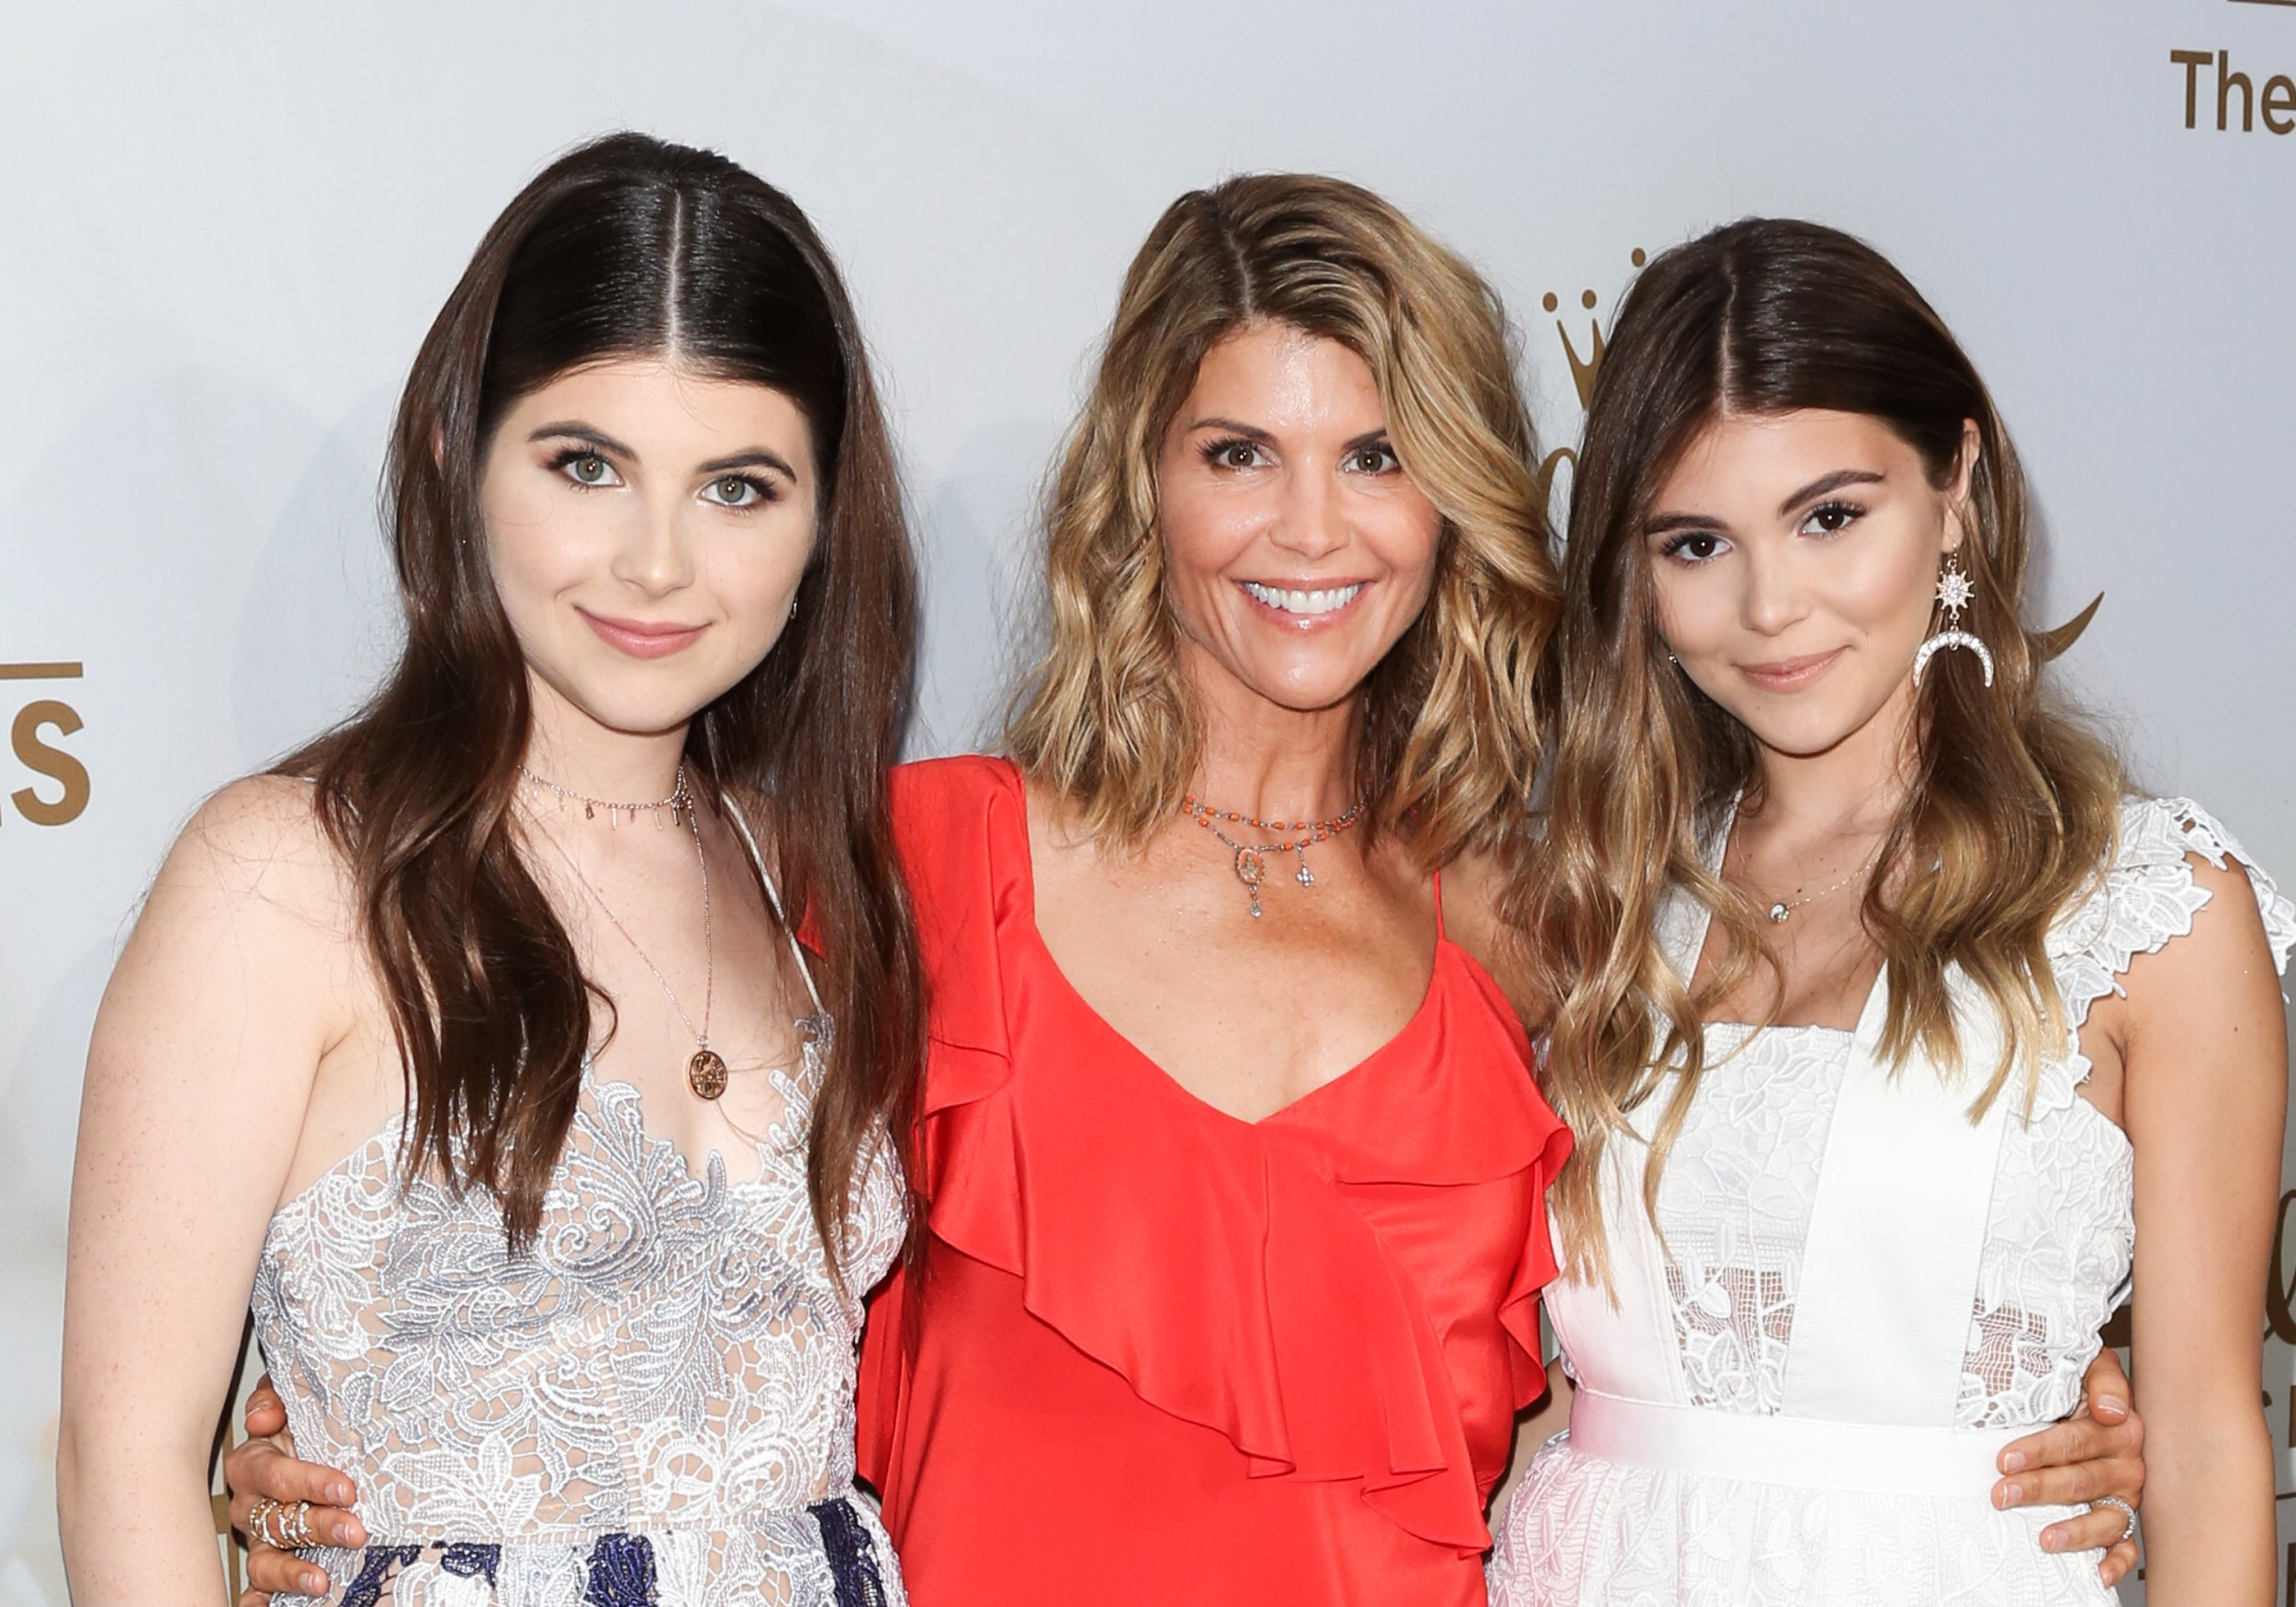 Lori Loughlin's daughter Olivia Jade still enrolled at USC despite college cheating scandal